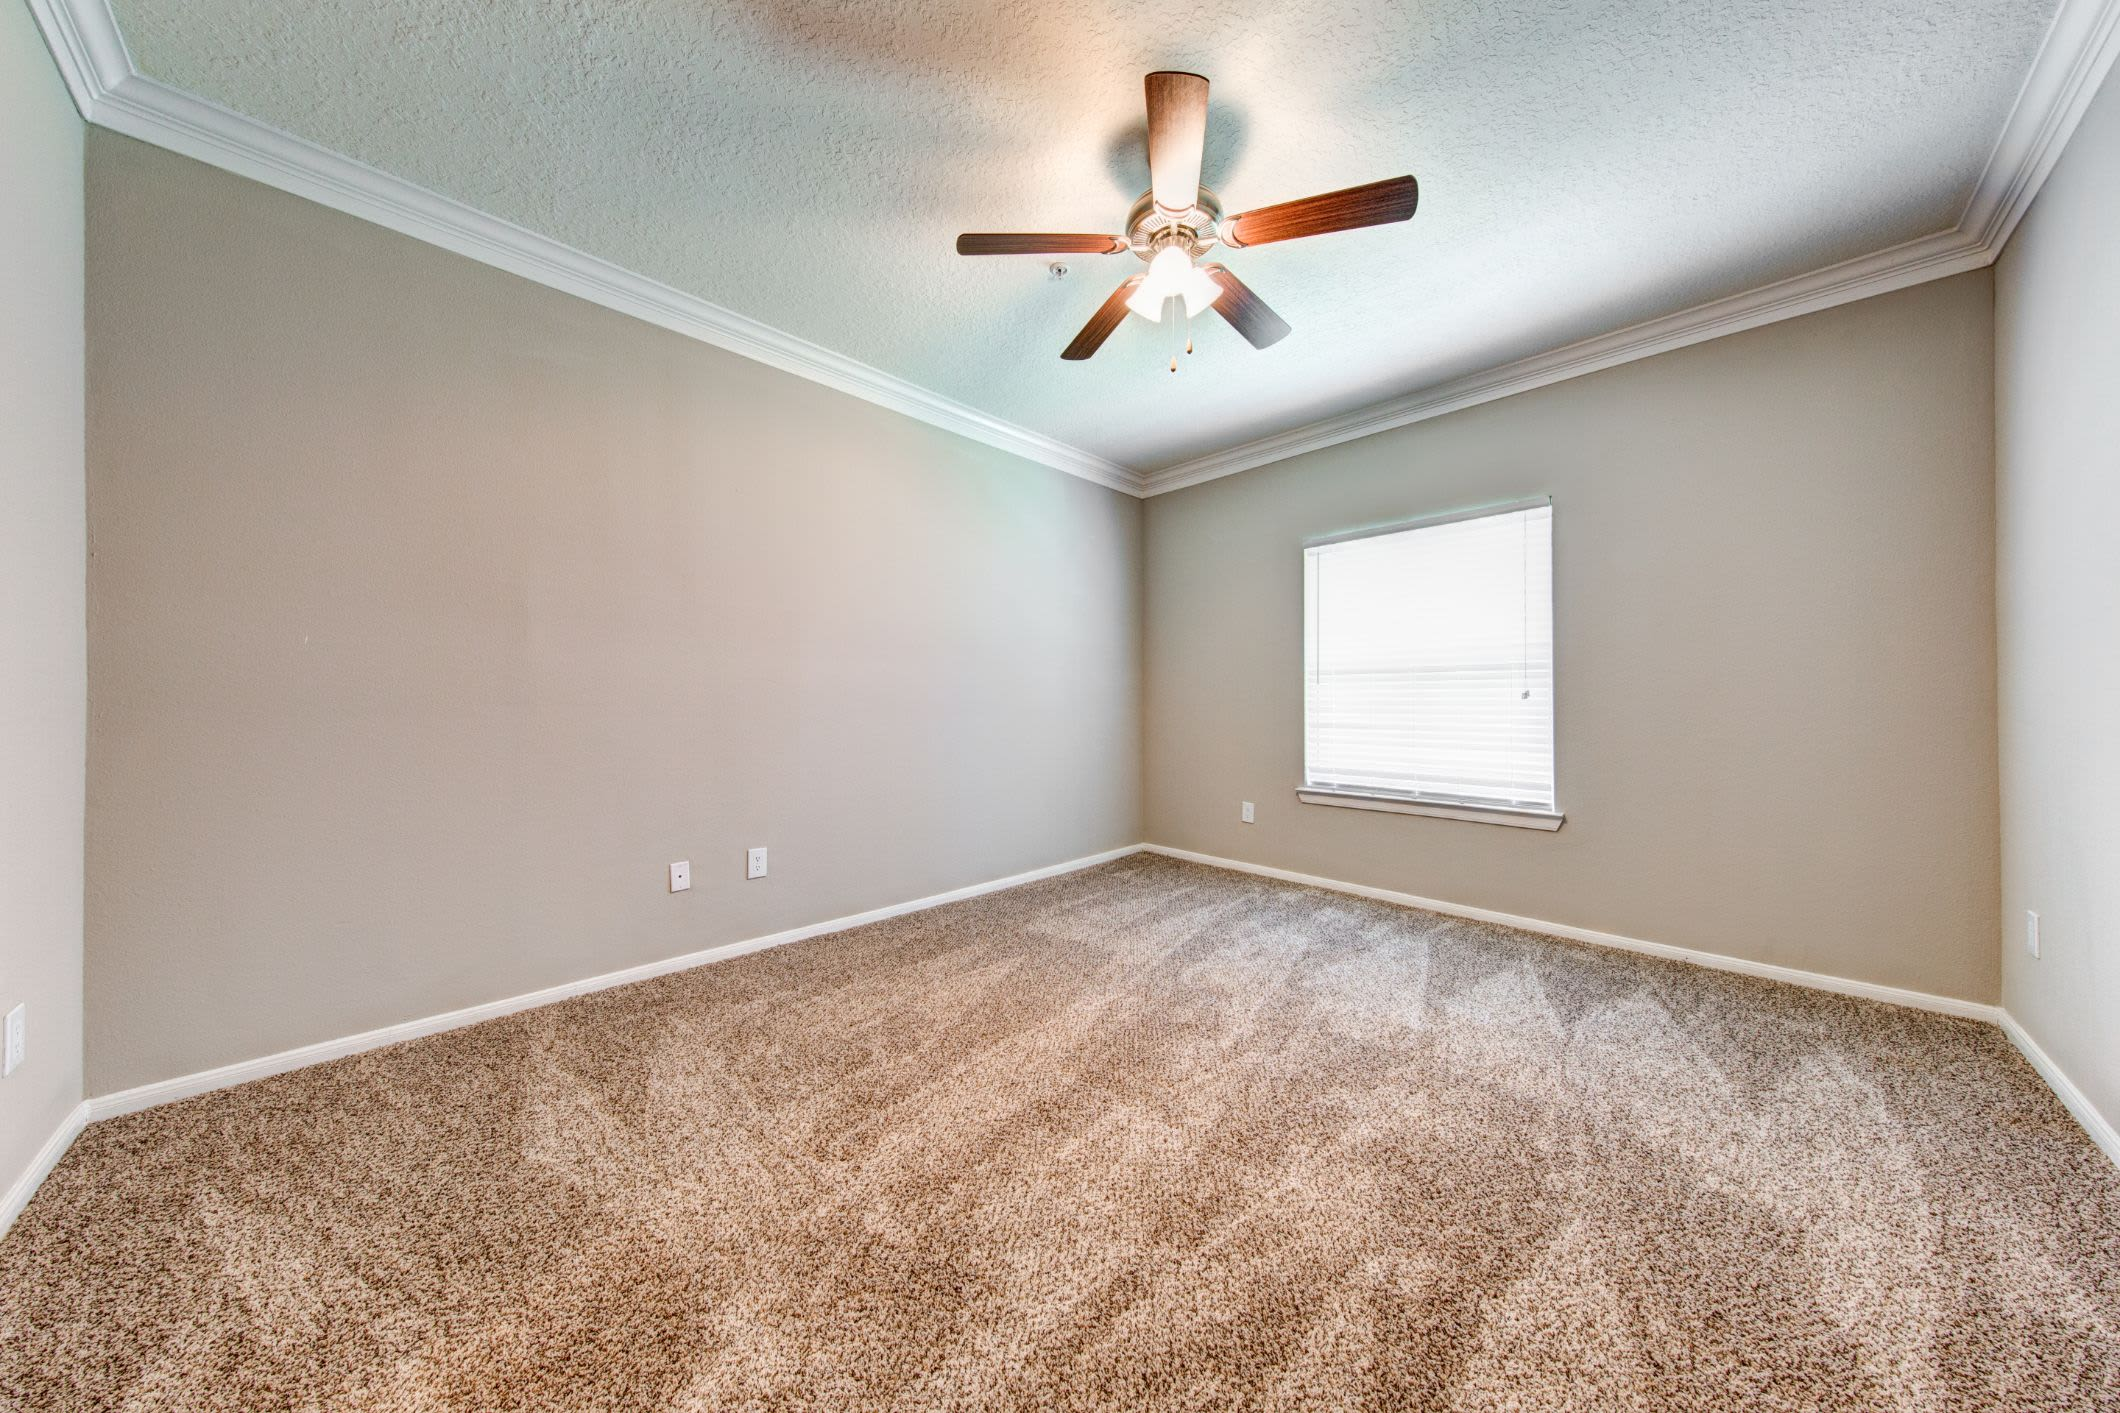 Bedroom with ceiling fan at Marquis at Silverton in Cary, North Carolina